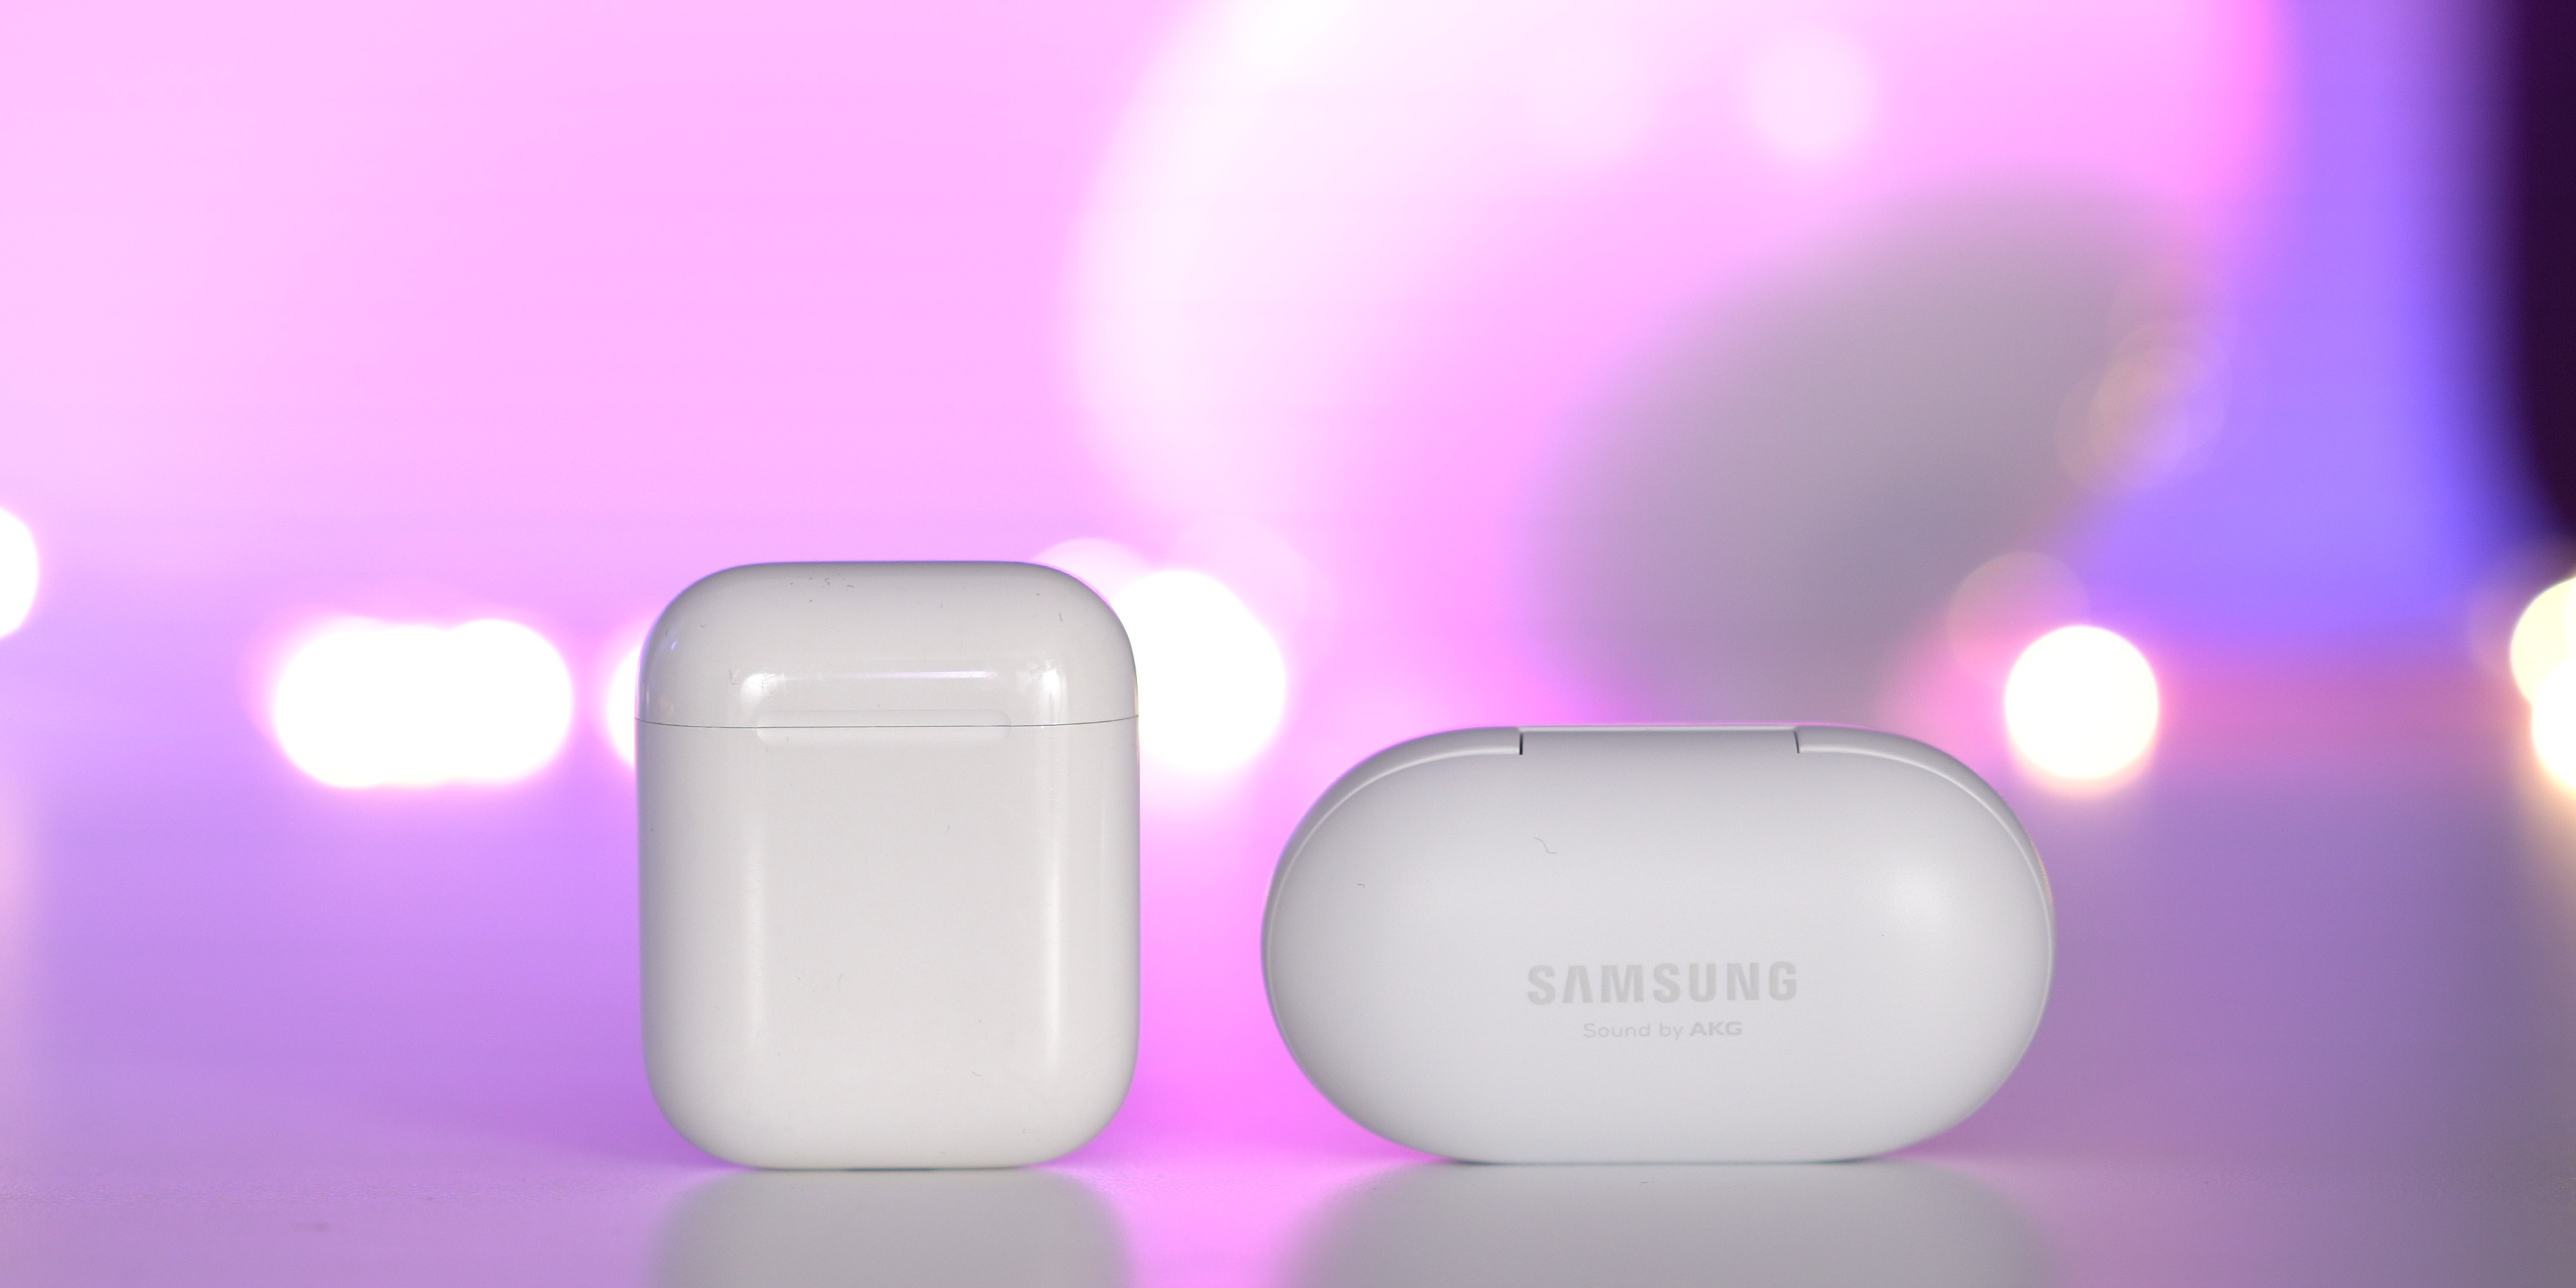 Galaxy Buds vs AirPods